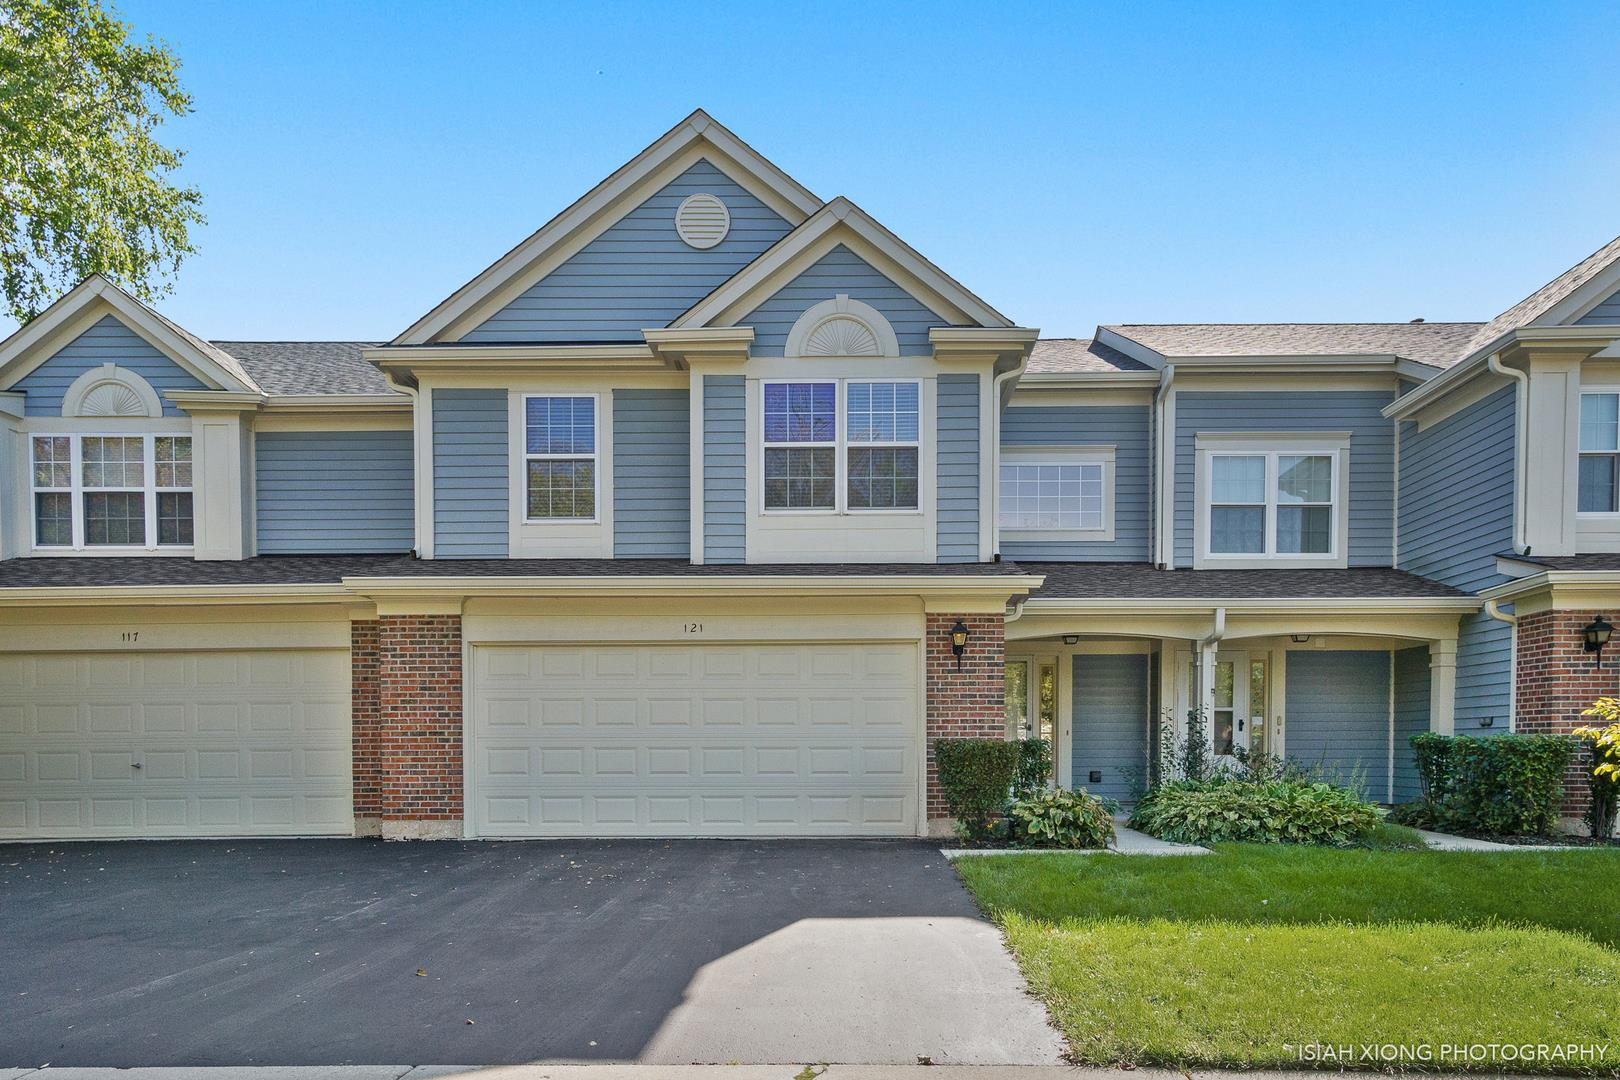 121 Crescent Lane #121, Schaumburg, IL 60193 - #: 10642550